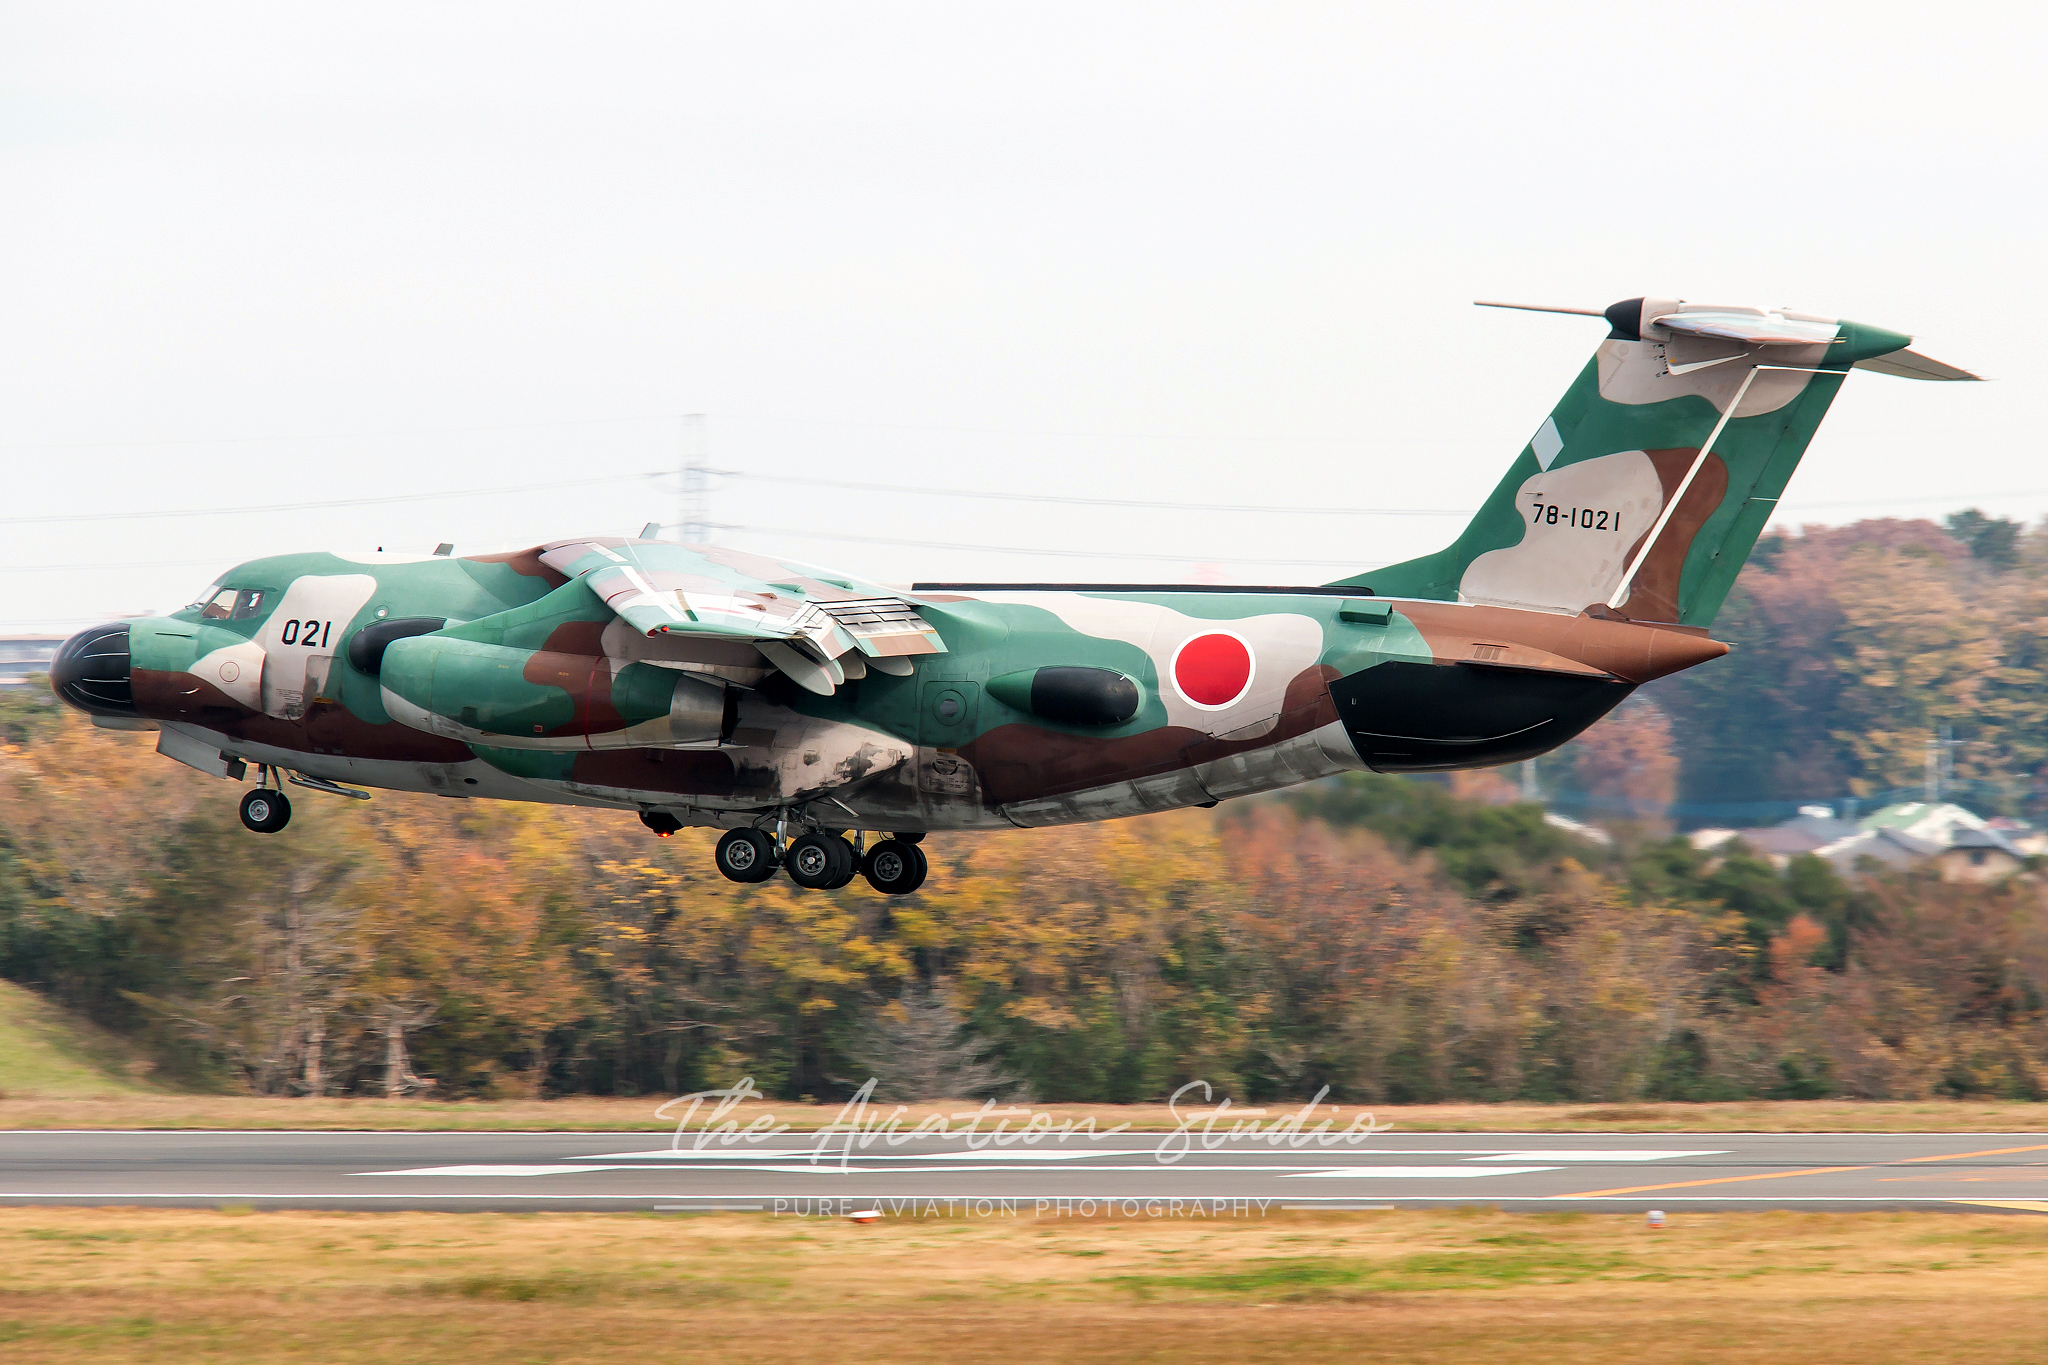 Kawasaki EC-1 78-1021 about to land at Iruma (Image: Brock Little)